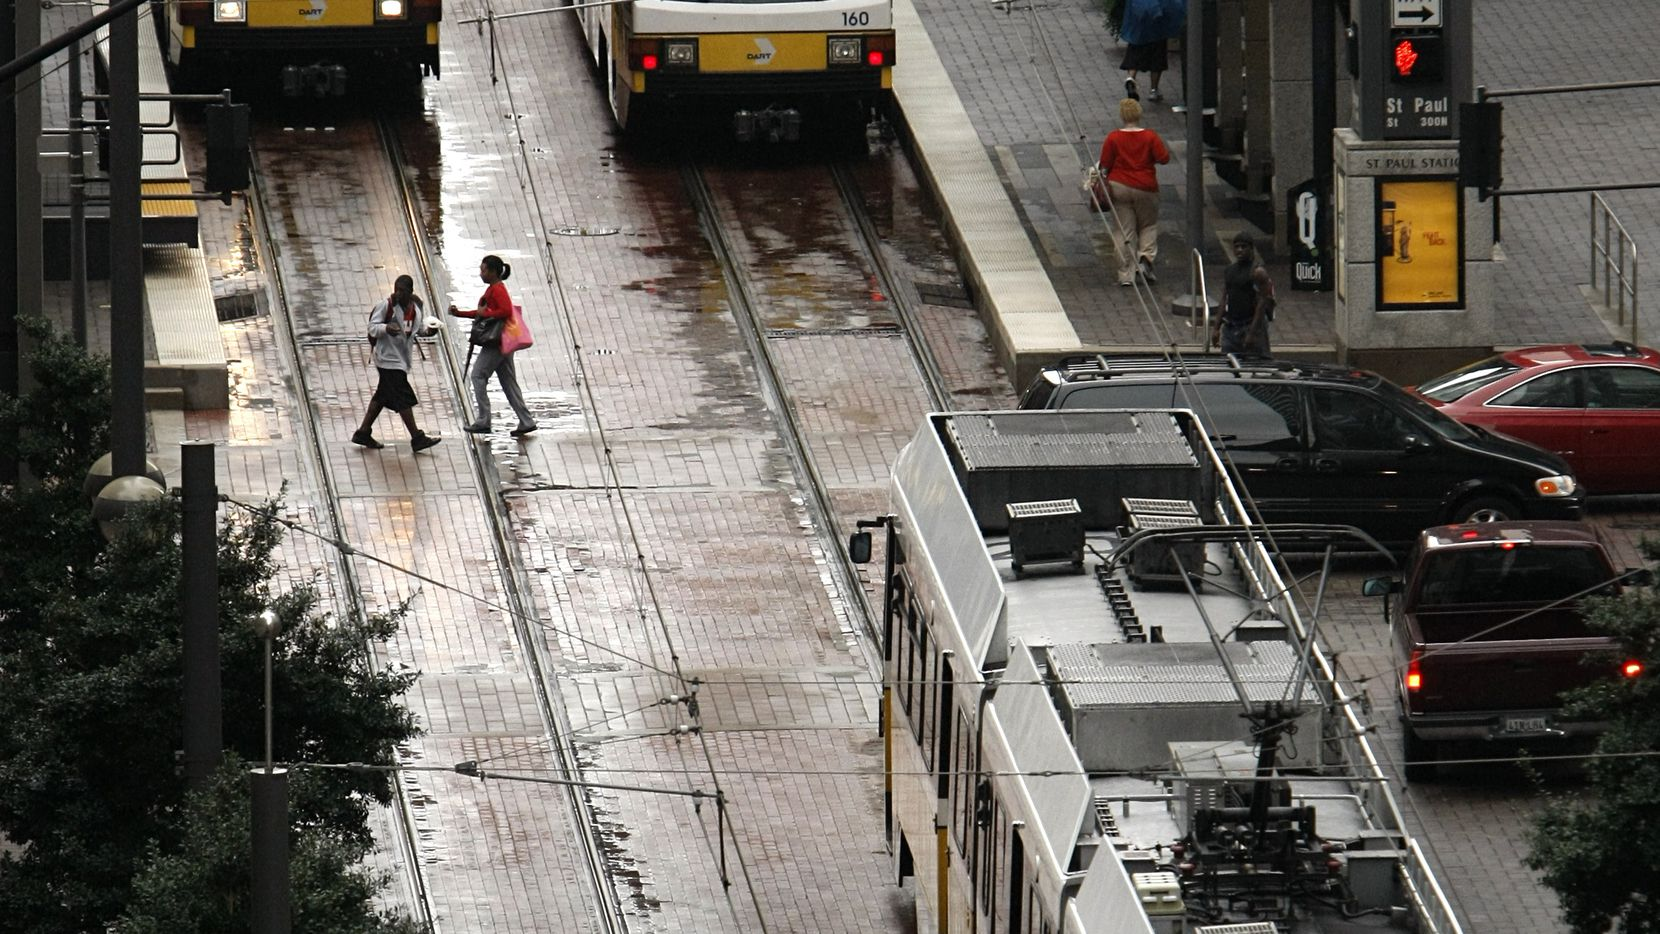 Construction of a new commuter rail line downtown could spur new real estate and economic growth. Or it could burden Dallas with a botched transit plan for generations to come.